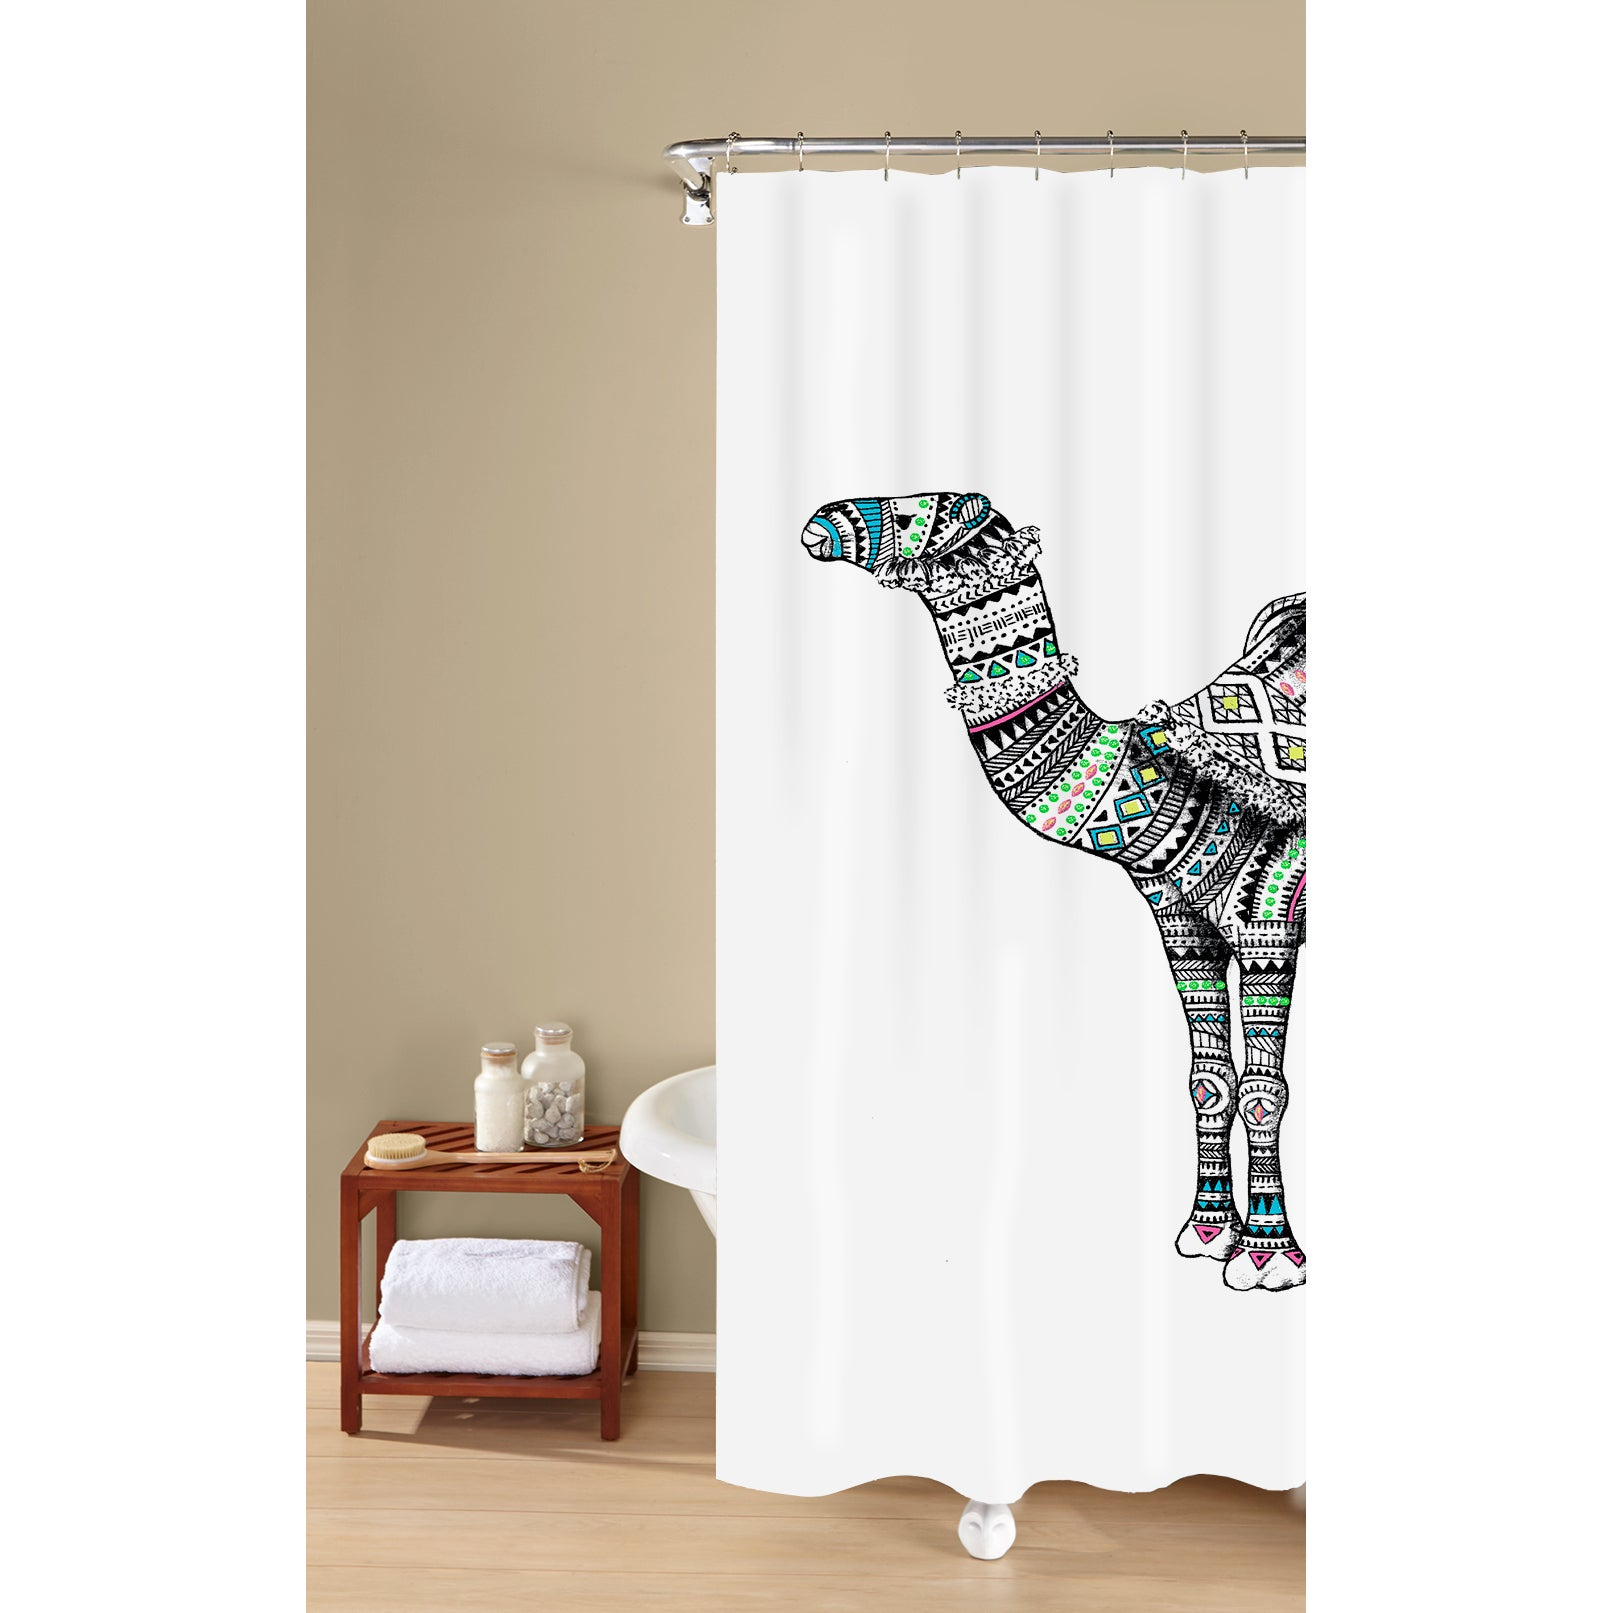 Metallic Camel Print Textured Fabric Print Black White 100 Percent Cotton Shower Curtain Inspired Surroundings By 1888 Mills